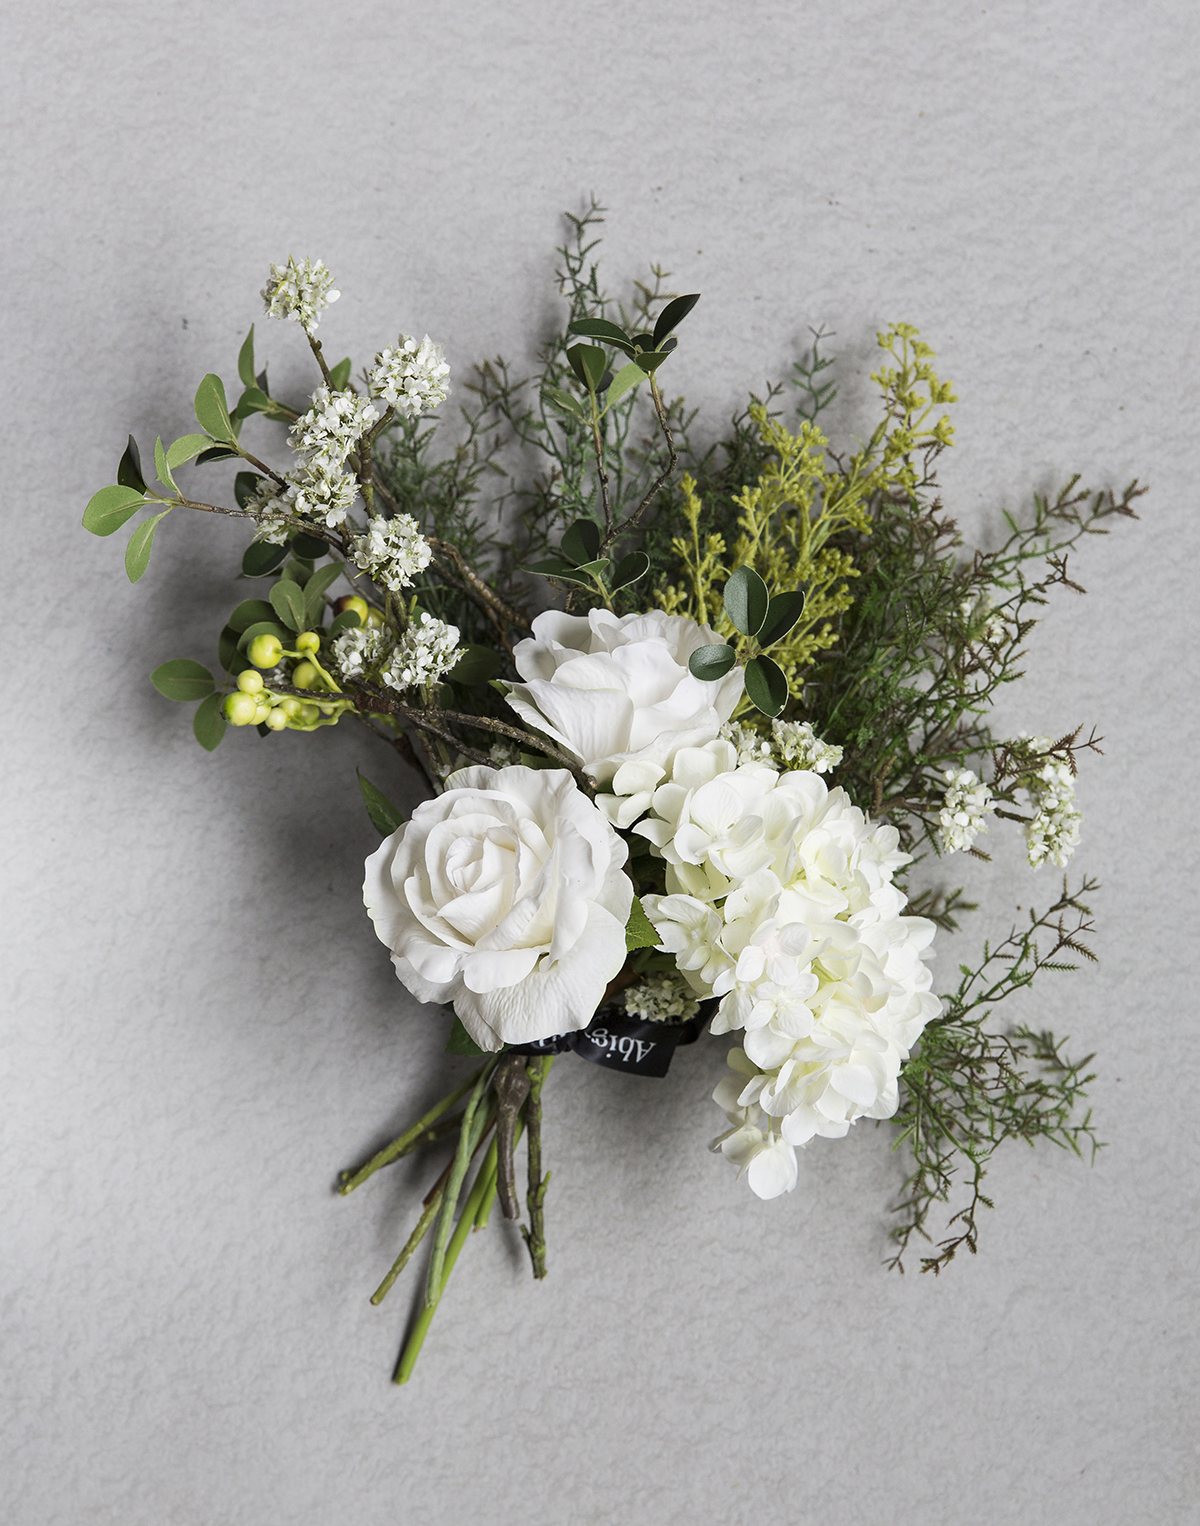 Woburn Bouquet,  Abigail Ahern , £110   Buy flowers that will last forever like these super-realistic faux bouquets from Abigail Ahern.